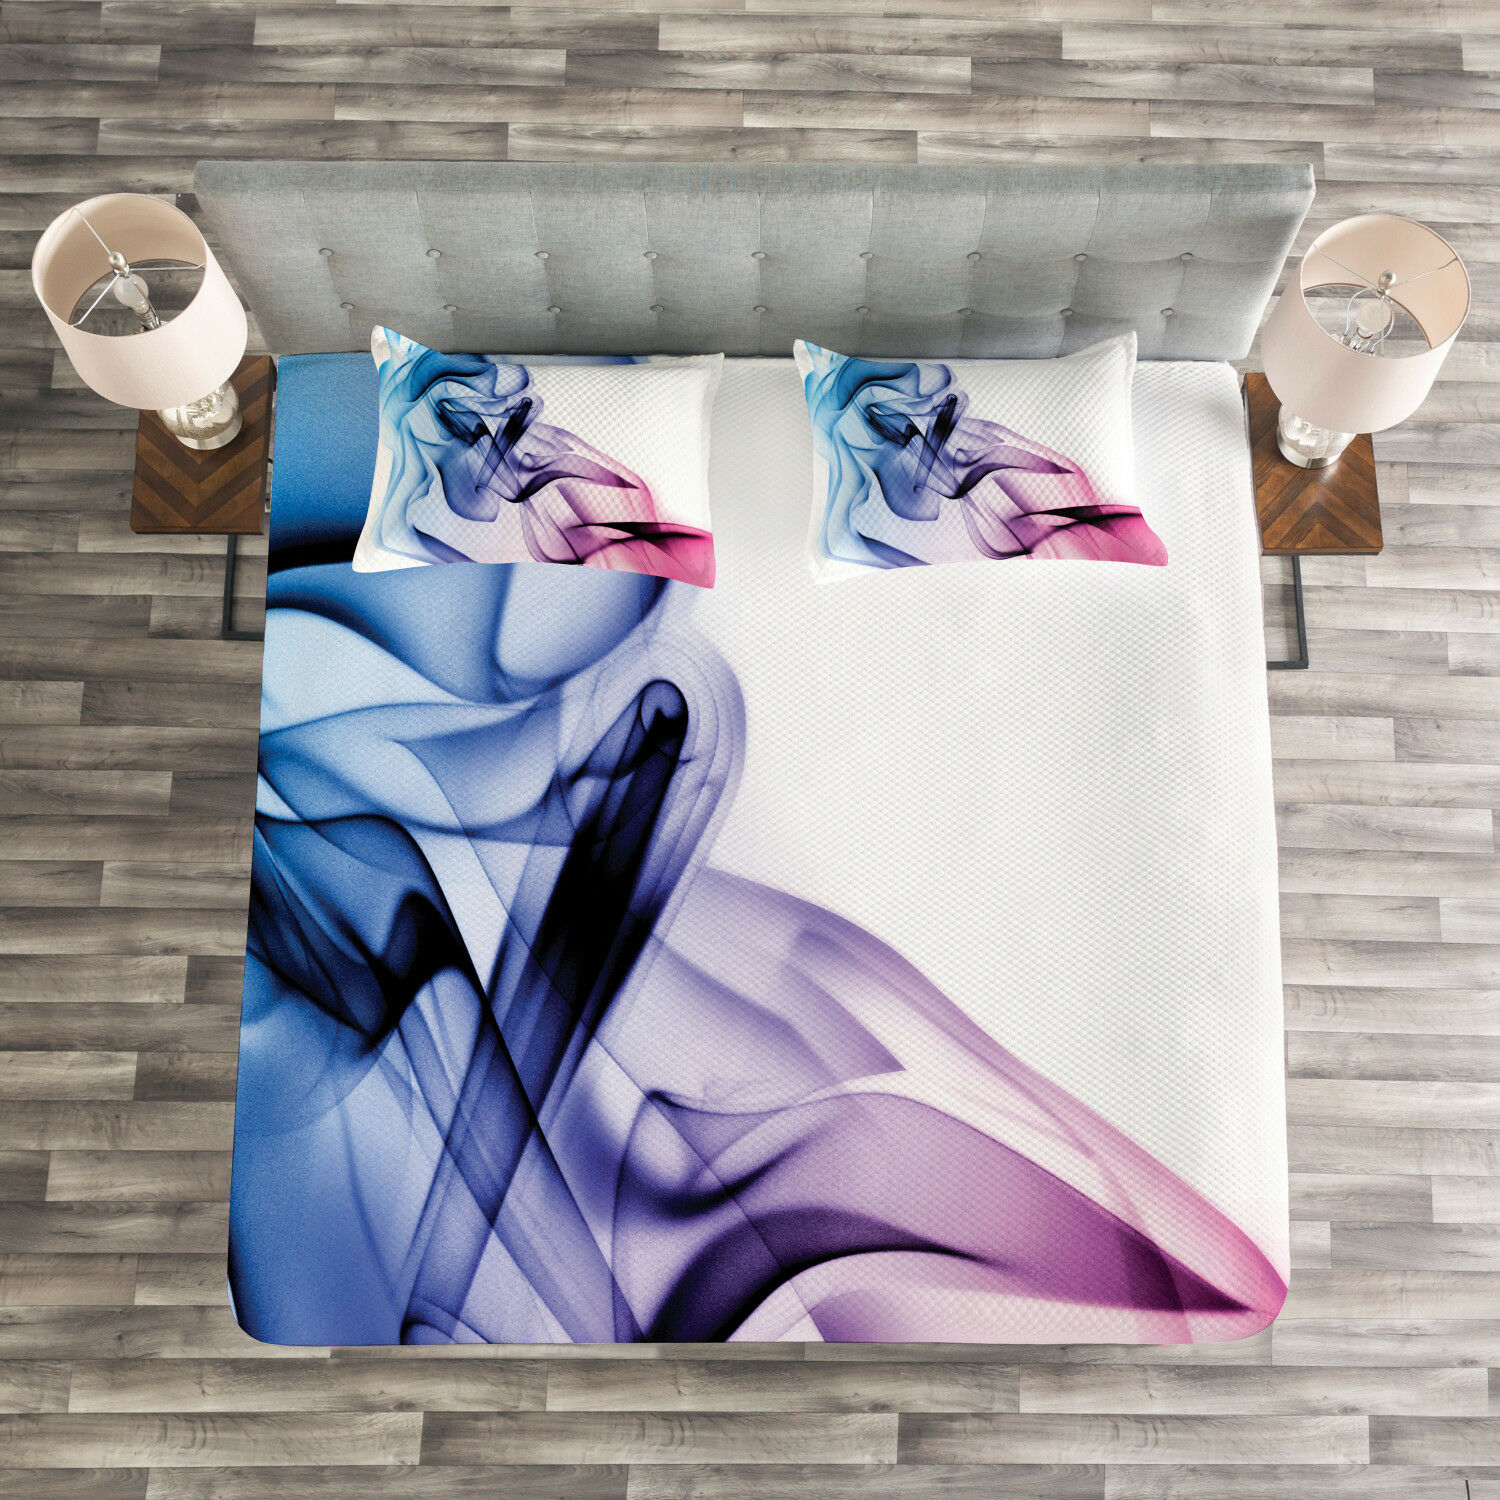 Abstract Quilted Bedspread & Pillow Shams Set, colorful Smoke Flow Print